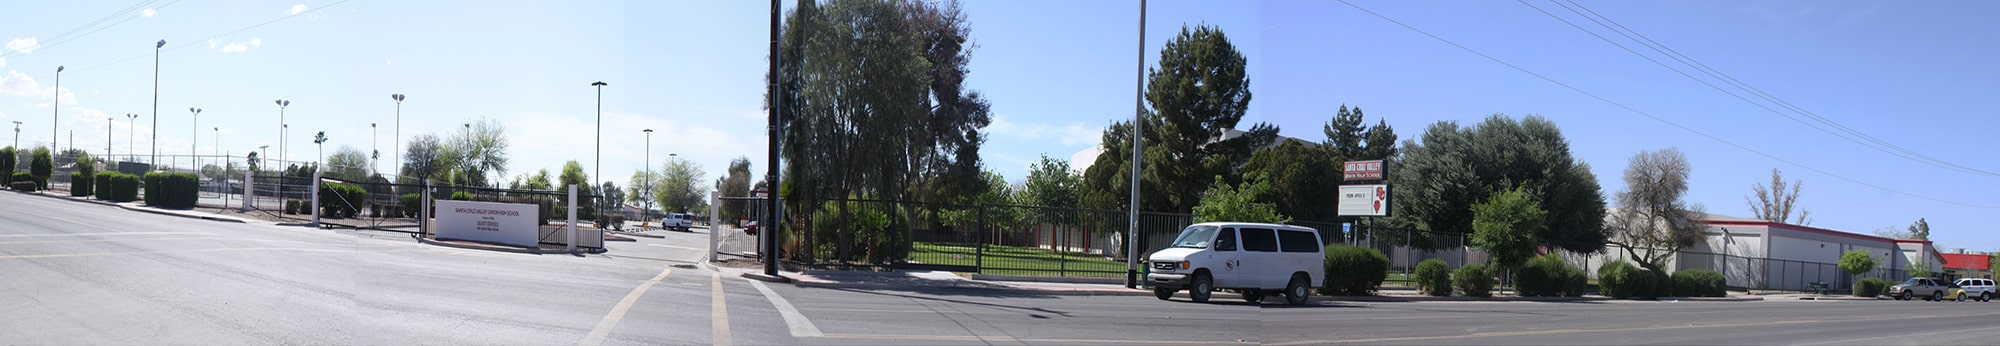 Panoramic view of the school campus